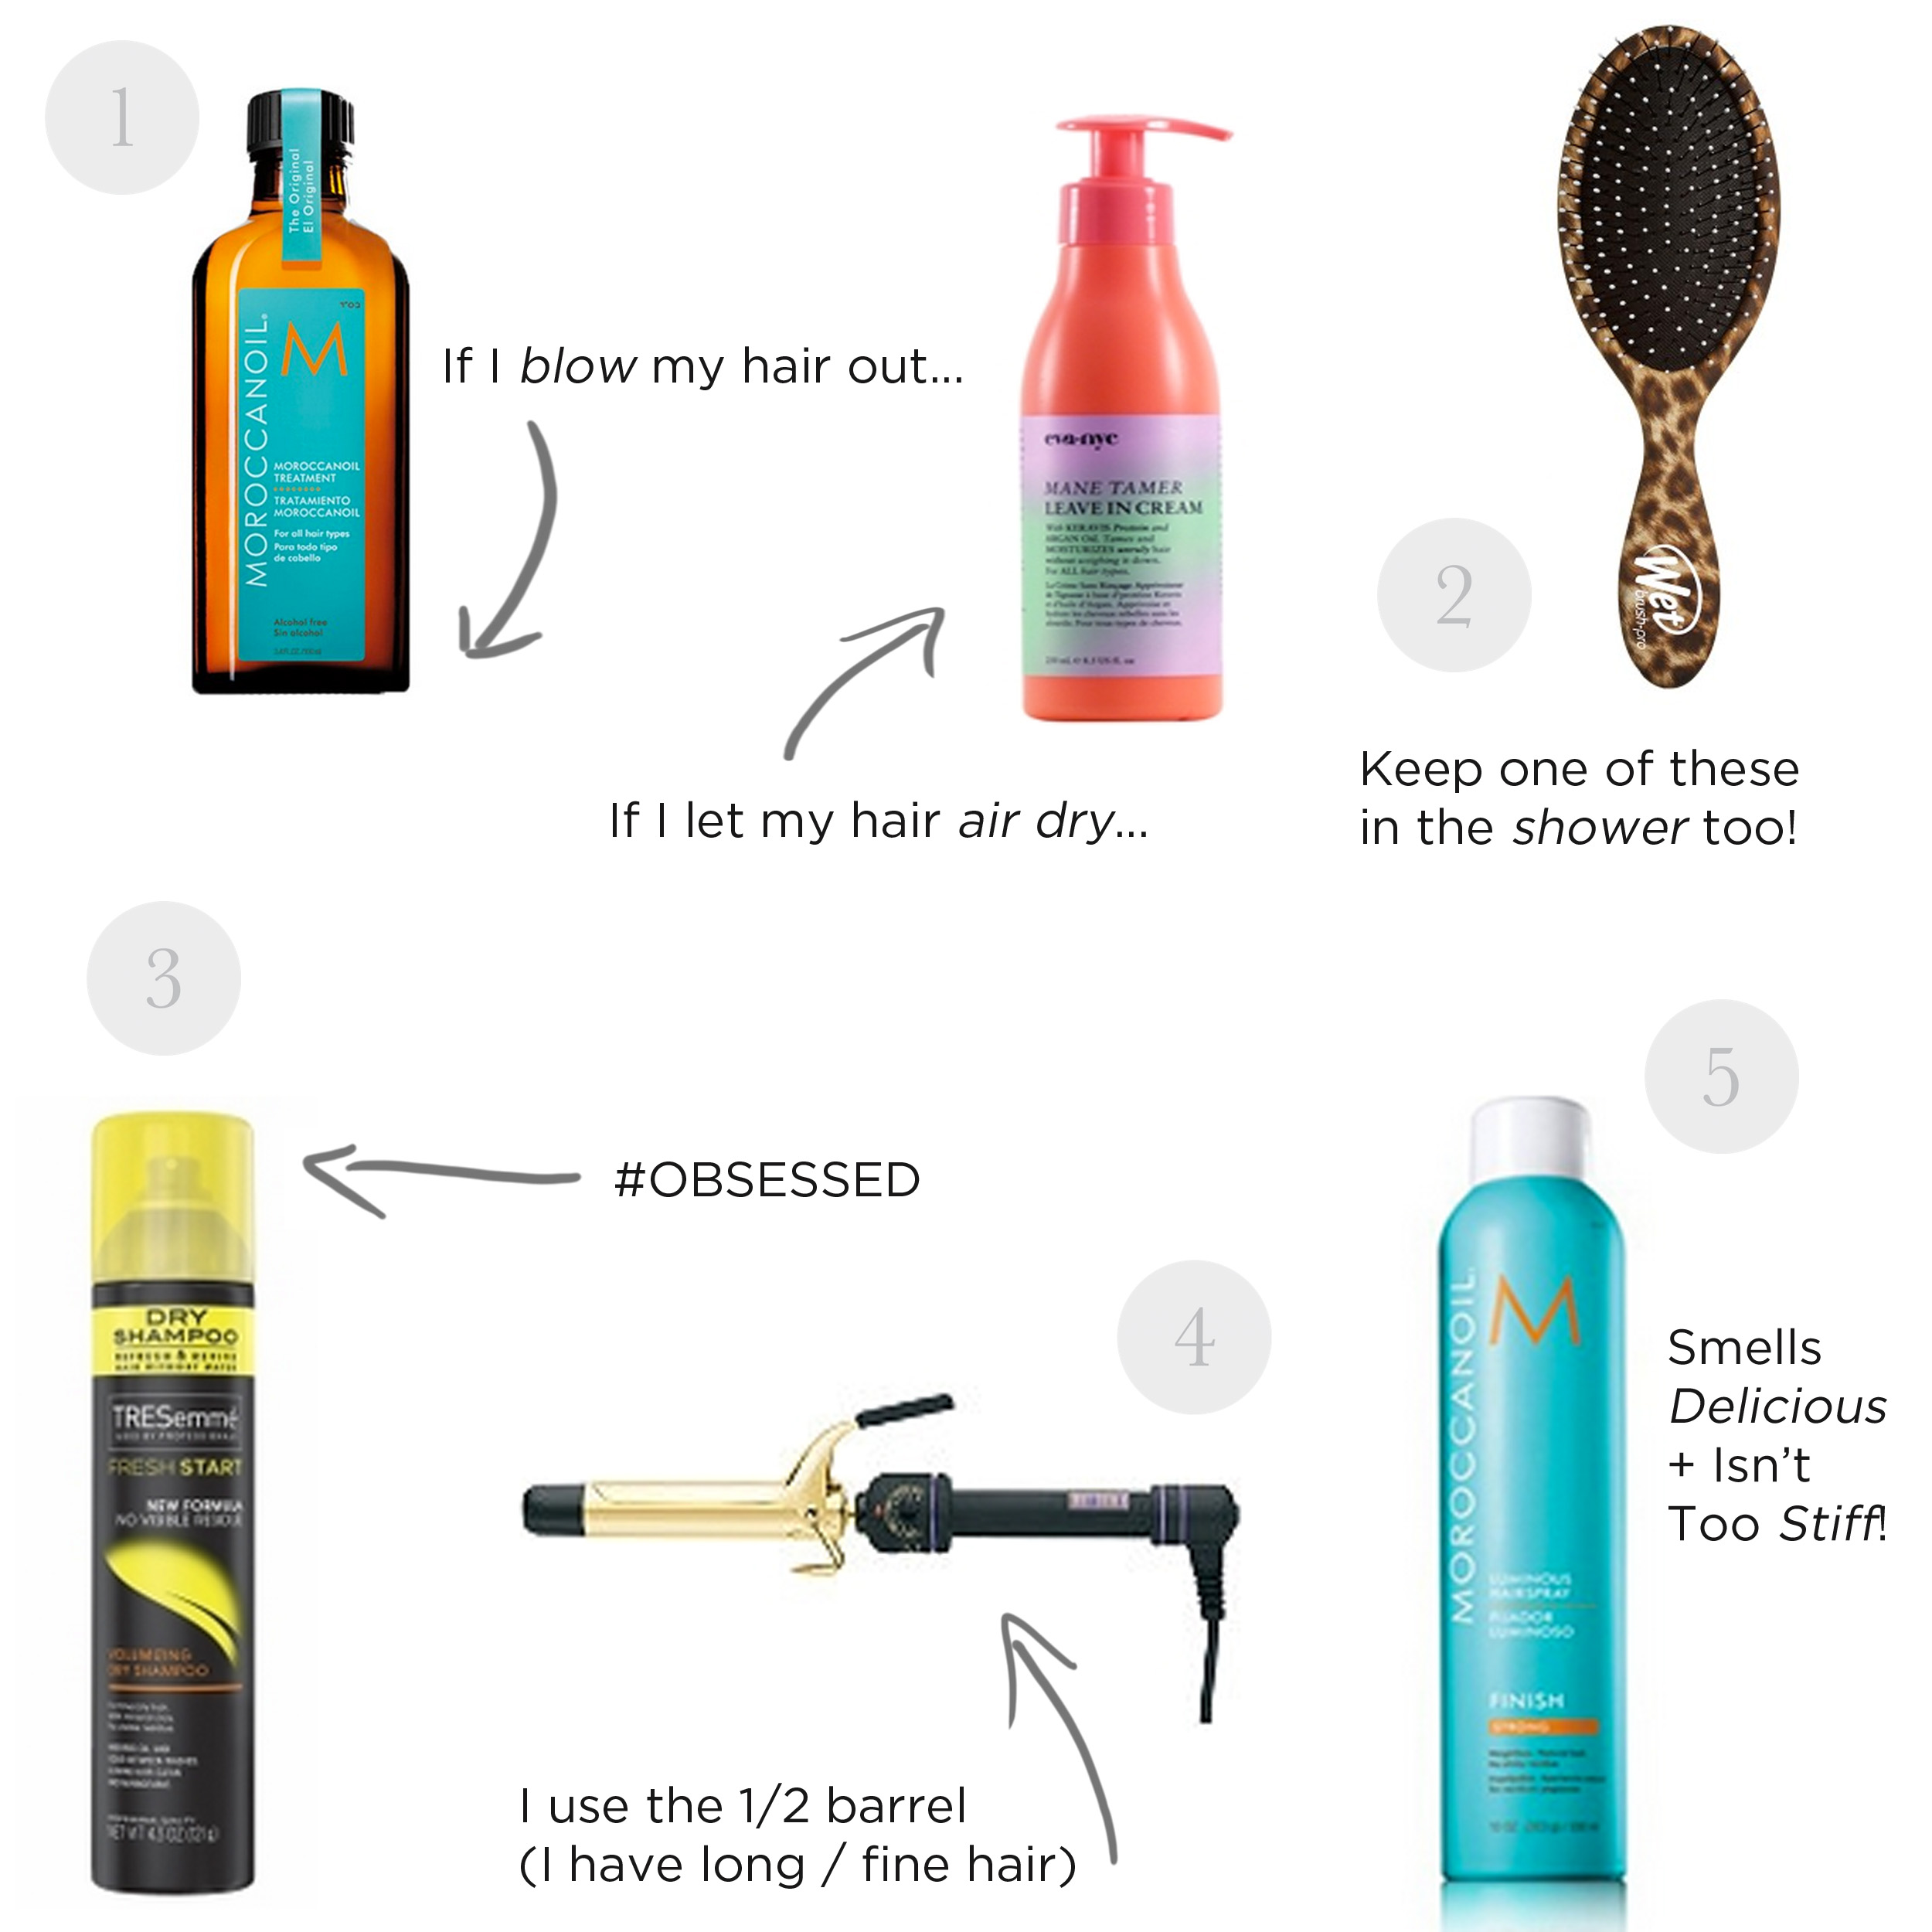 HairCareRoutine missyonmadison hairstyle beautyblog beautyblogger hairtutorial curlinghair curledhair hairstylingtutorial haircareproducts ulta hottools hottoolscurlingiron moroccanoil tresemmee dryshampoo wetbrush haircaretips winterhair